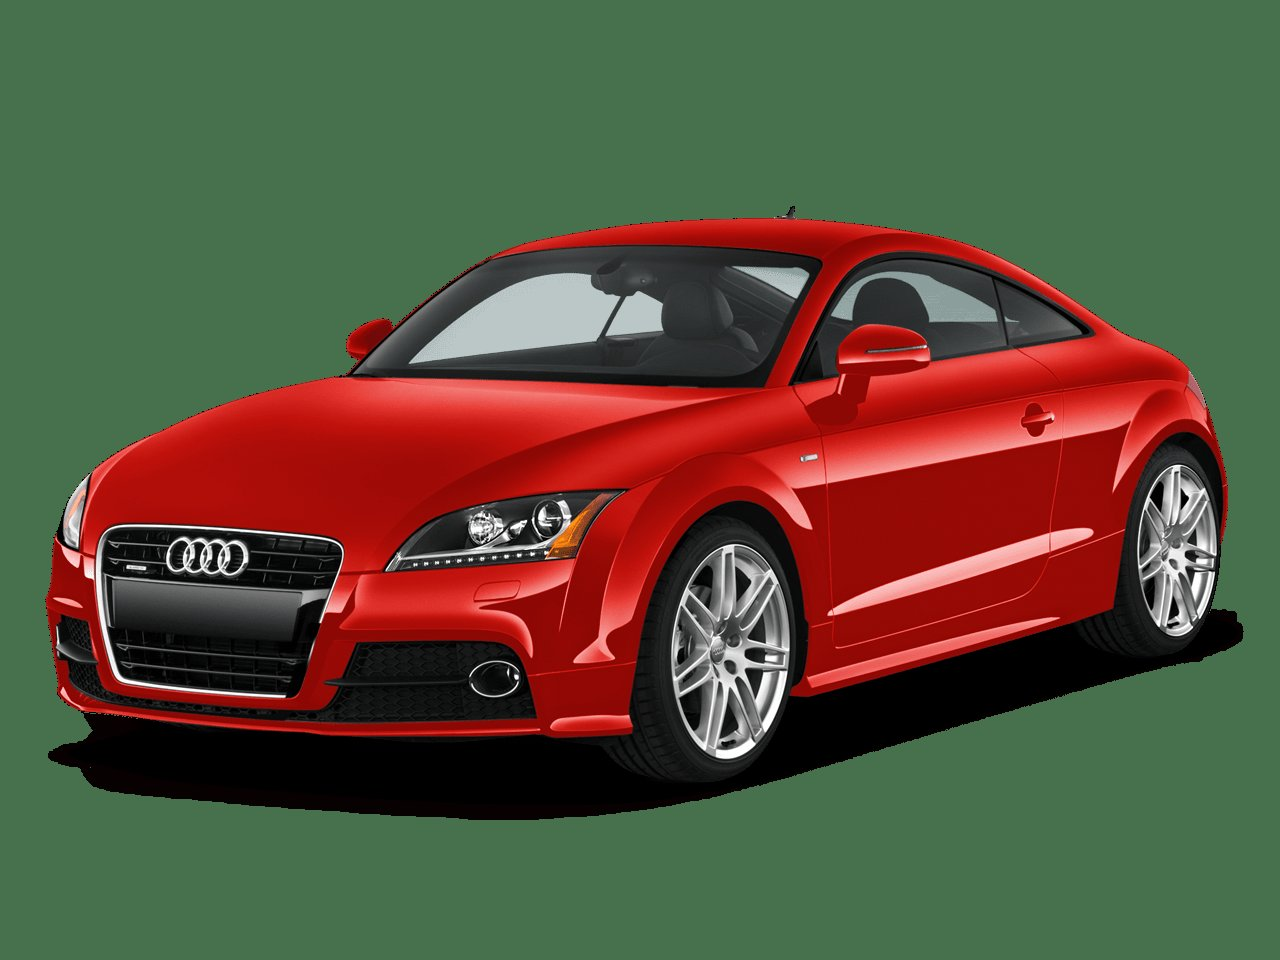 Latest Red Audi Car Front Look 4240598 1280X960 All For Desktop Free Download